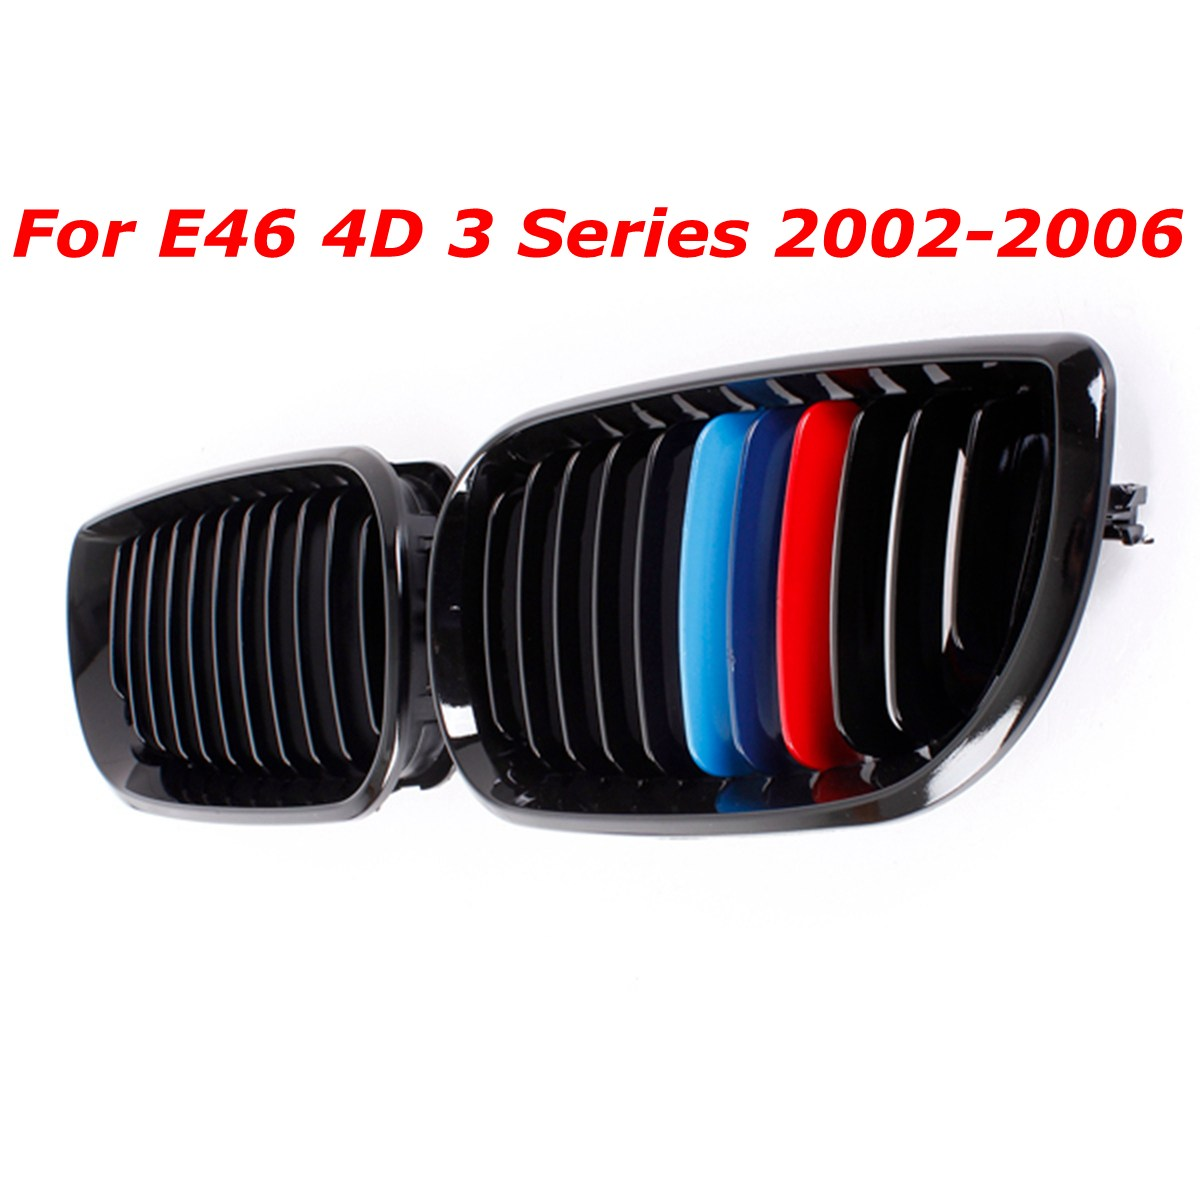 Pair Gloss Black Car Grill Front M-color Kidney Grille Grill For BMW E46 4D 3 Series 2002 2003 2004 2005 2006 pair gloss matt black m color 2 line front kidney grille grill double slat for bmw e90 e91 3 series 2004 2005 2006 2007